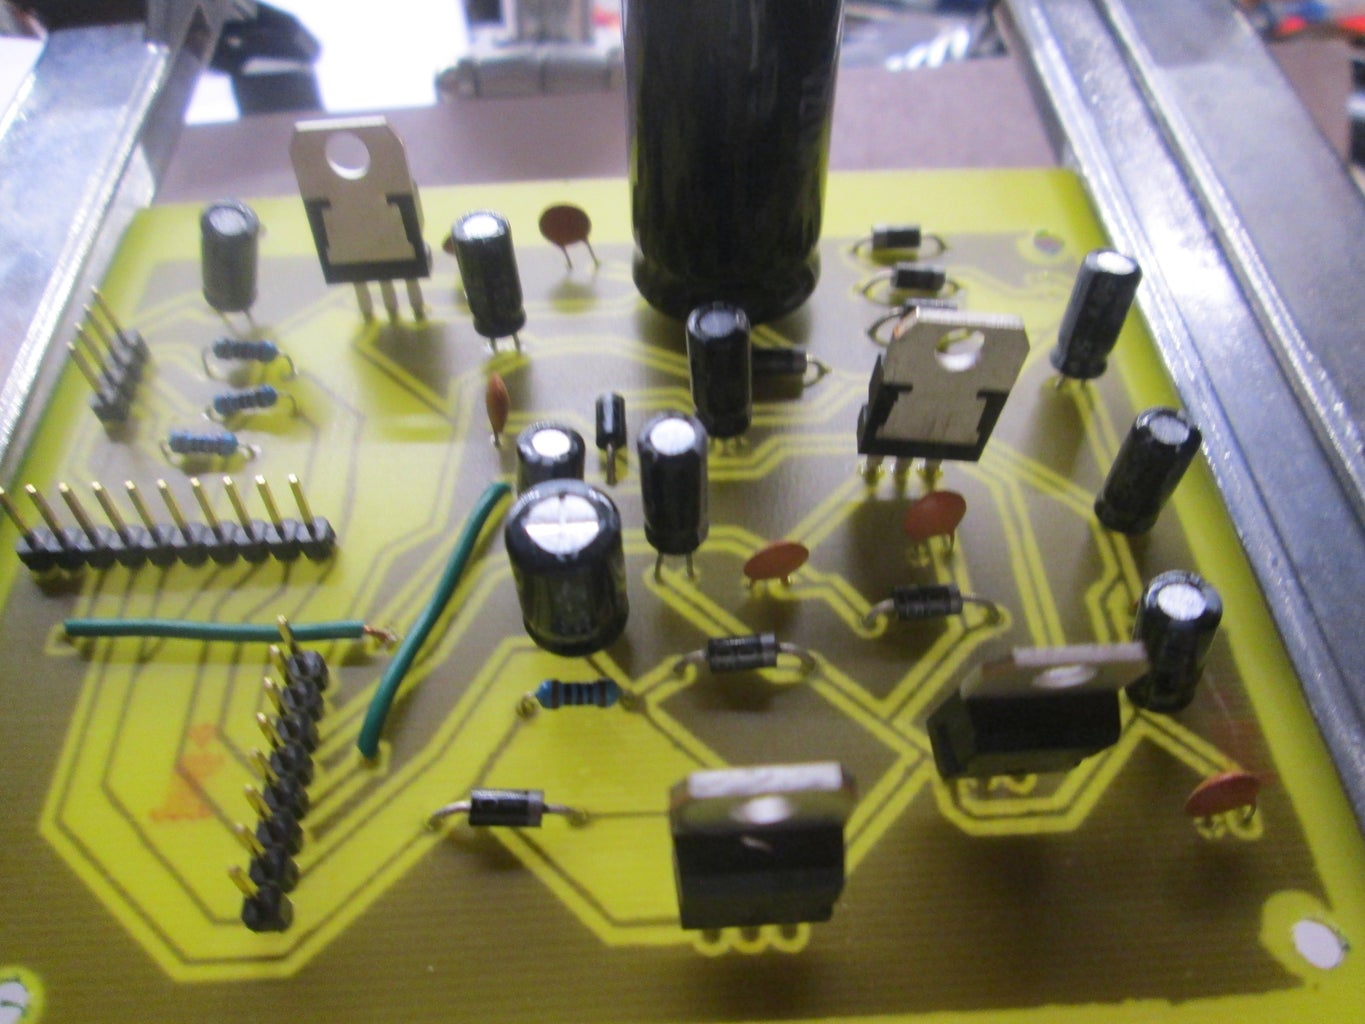 PCB and Electronic Components Installation